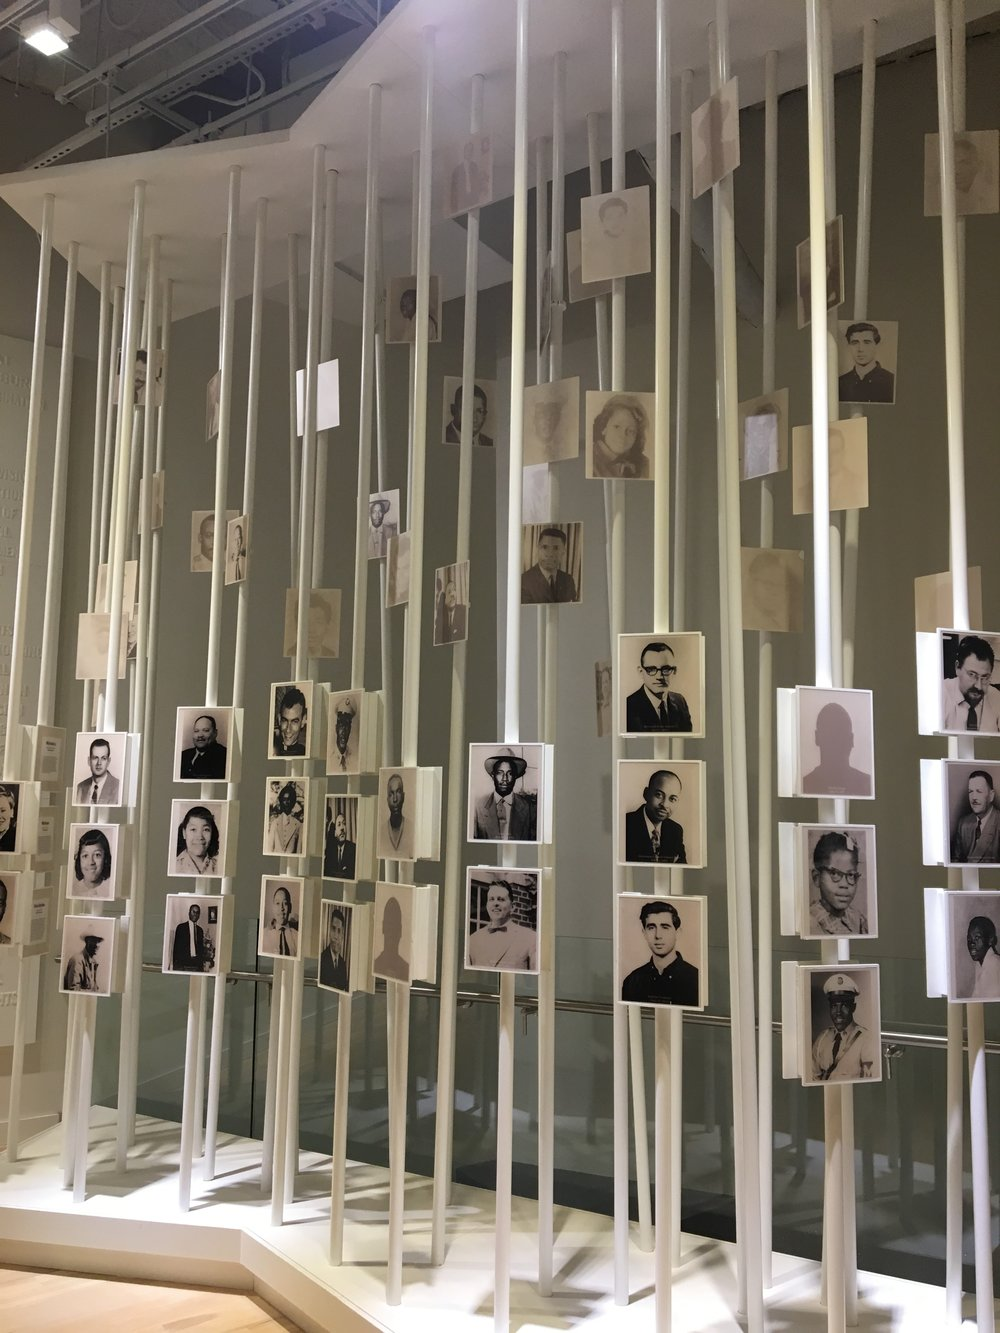 This installation commemorates people who died fighting for the Civil Rights Movement.